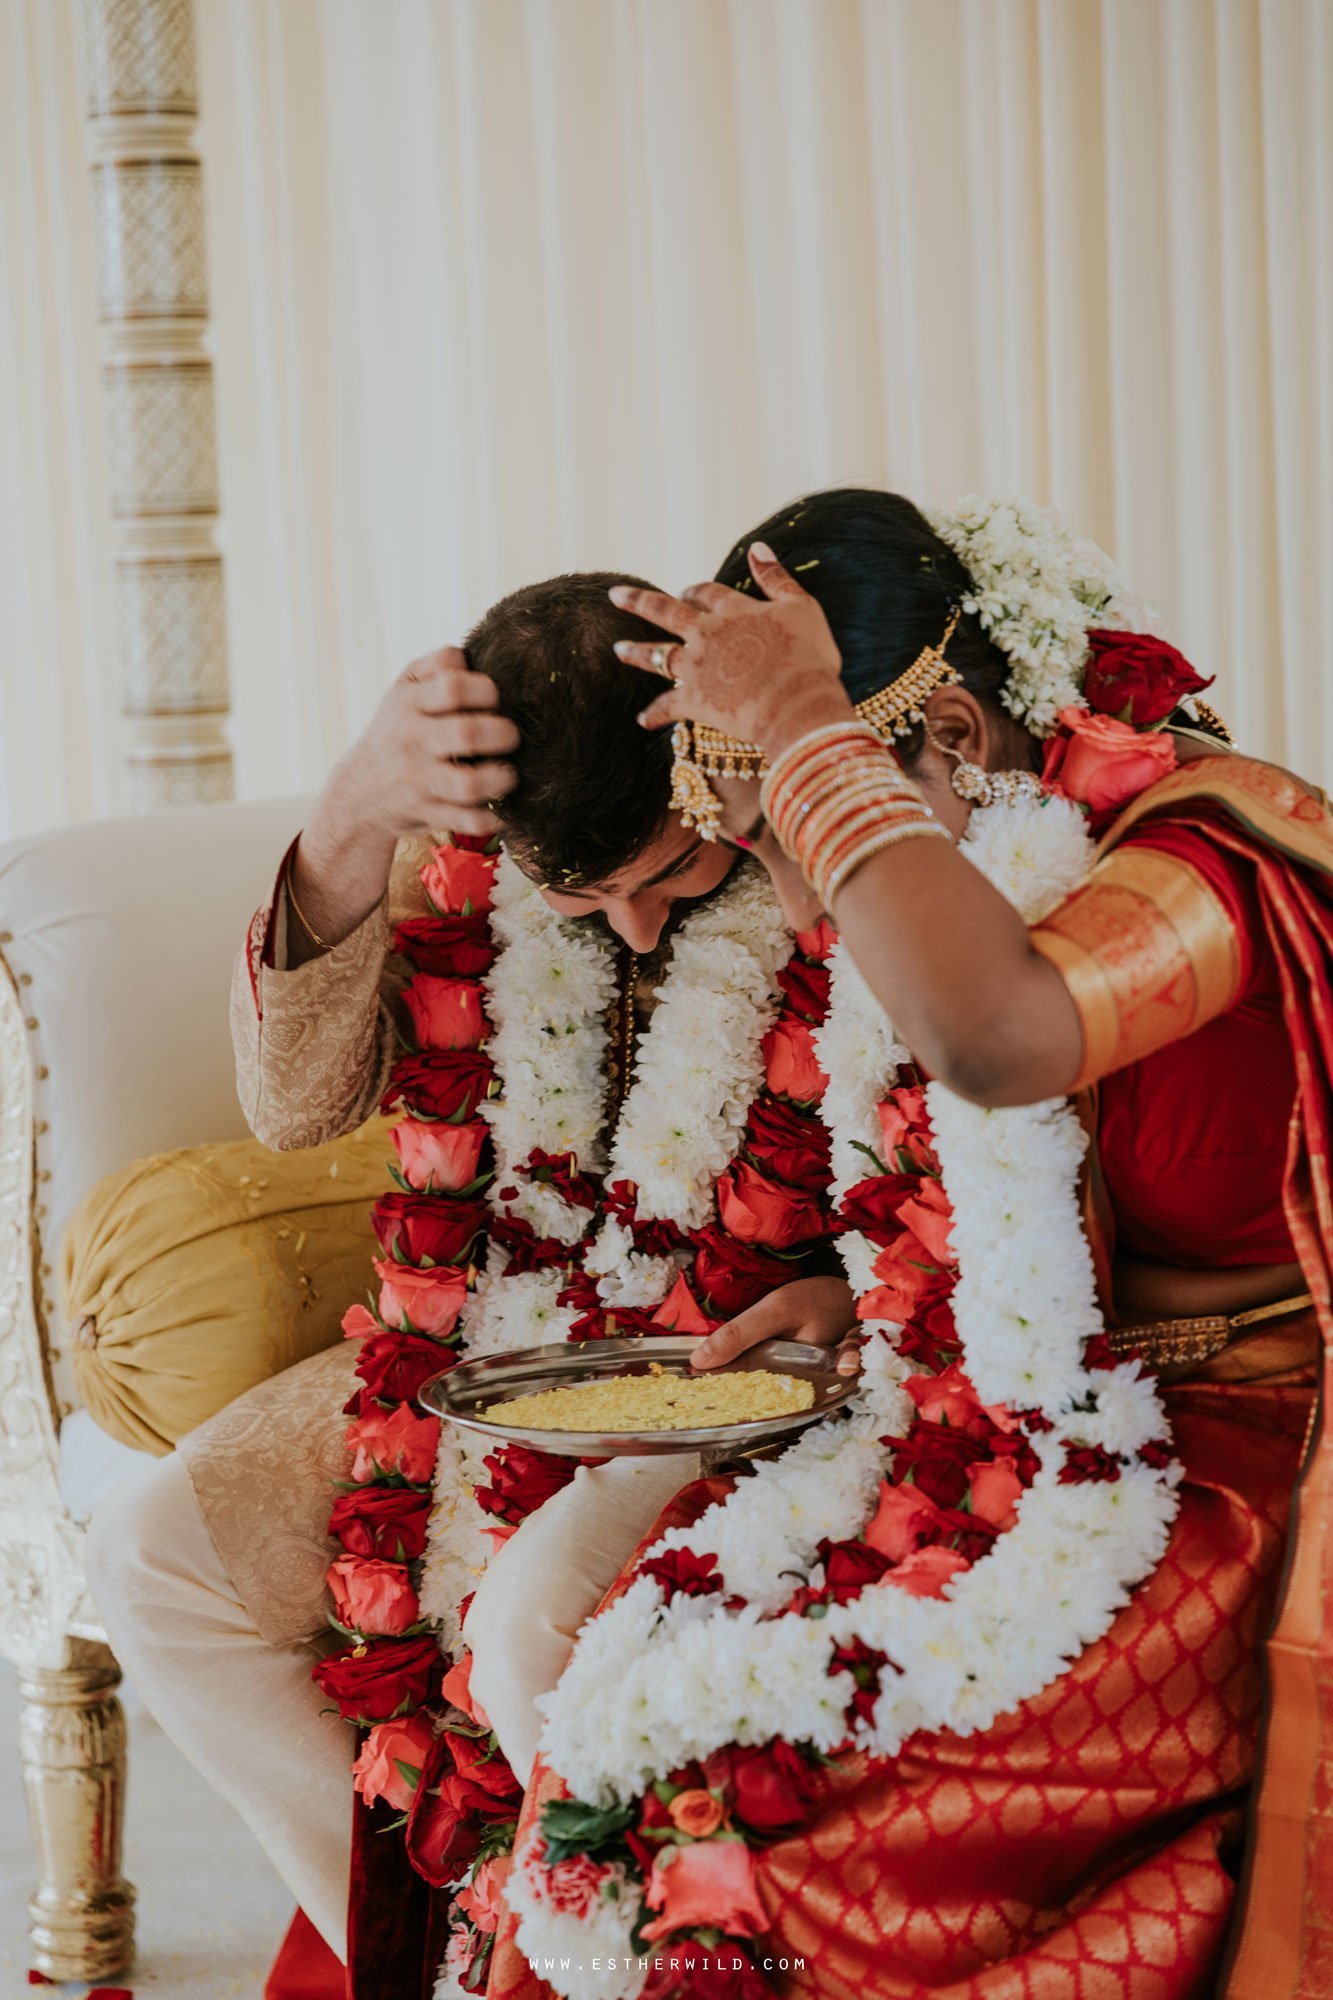 Northbrook_Park_Farnham_Surrey_London_Wedding_Hindu_Fusion_Esther_Wild_Photographer_IMG_5246.jpg